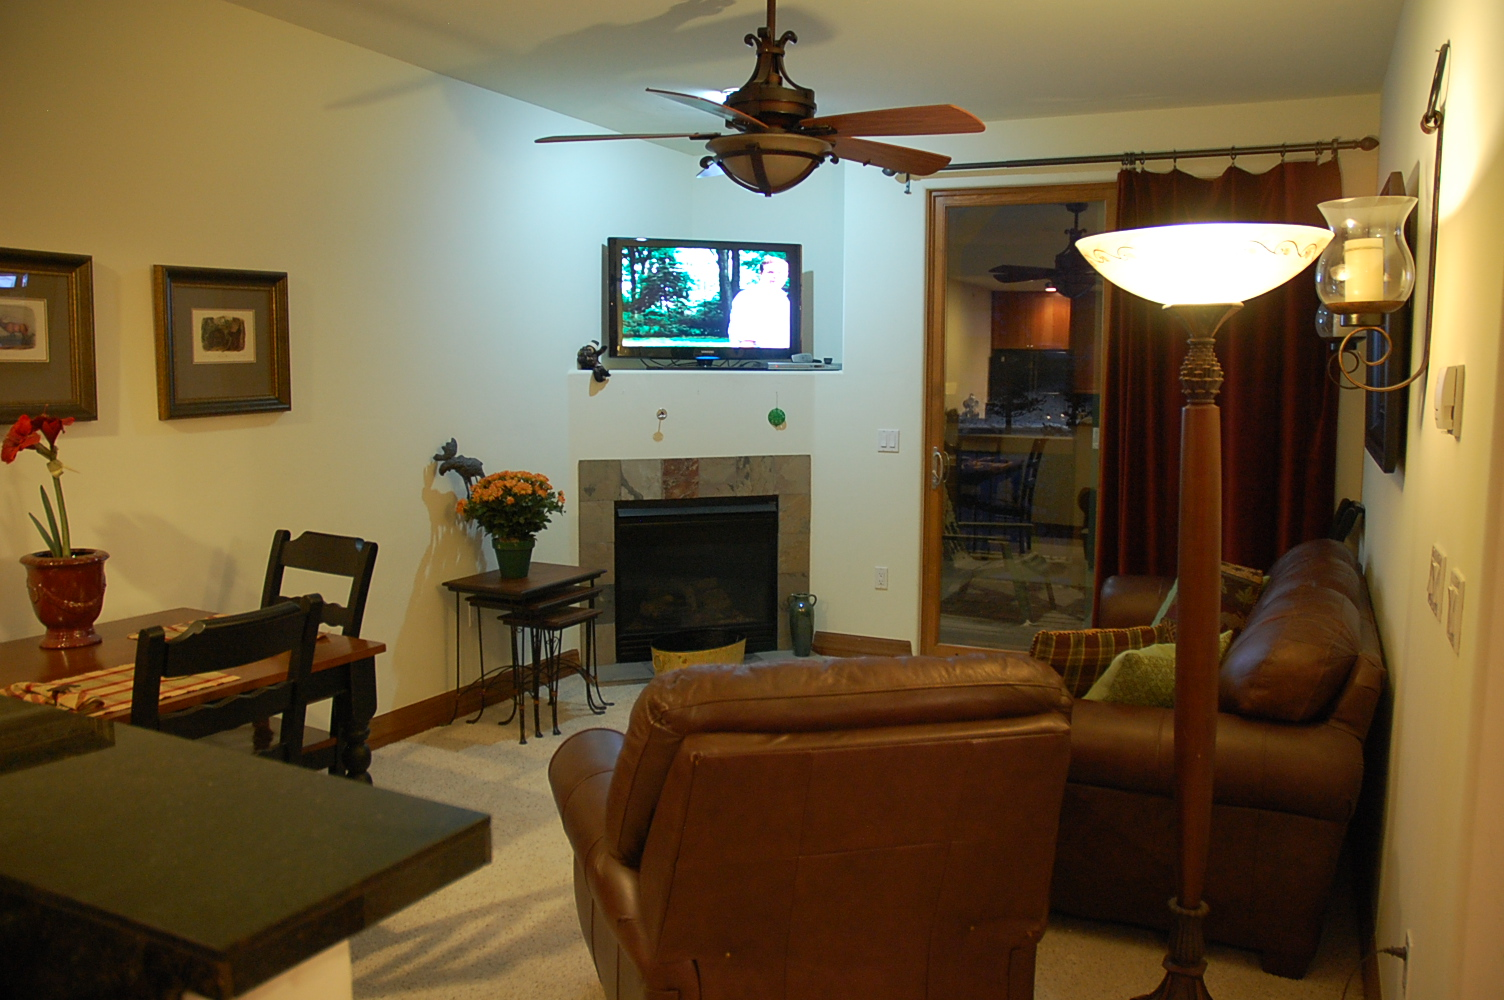 For Sale By Owner Breckenridge 1 Bedroom Condo in Highland Greens Lodge $319,500